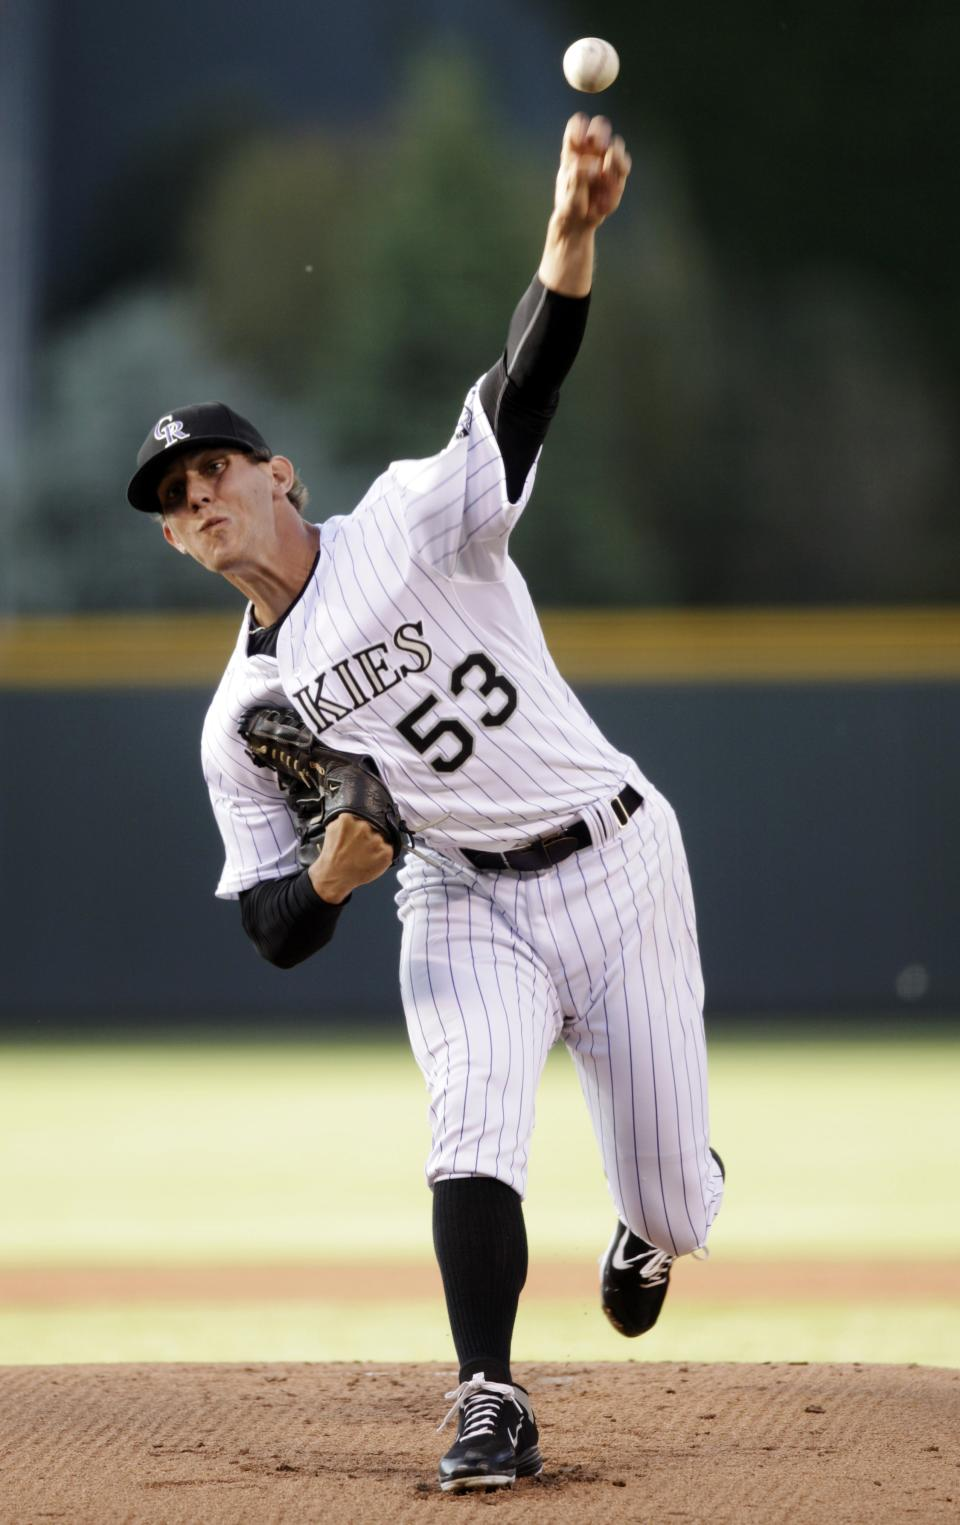 Colorado Rockies starting pitcher Christian Friedrich delivers against the Houston Astros in the first inning of a baseball game, Wednesday, May 30, 2012, in Denver. (AP Photo/Joe Mahoney)